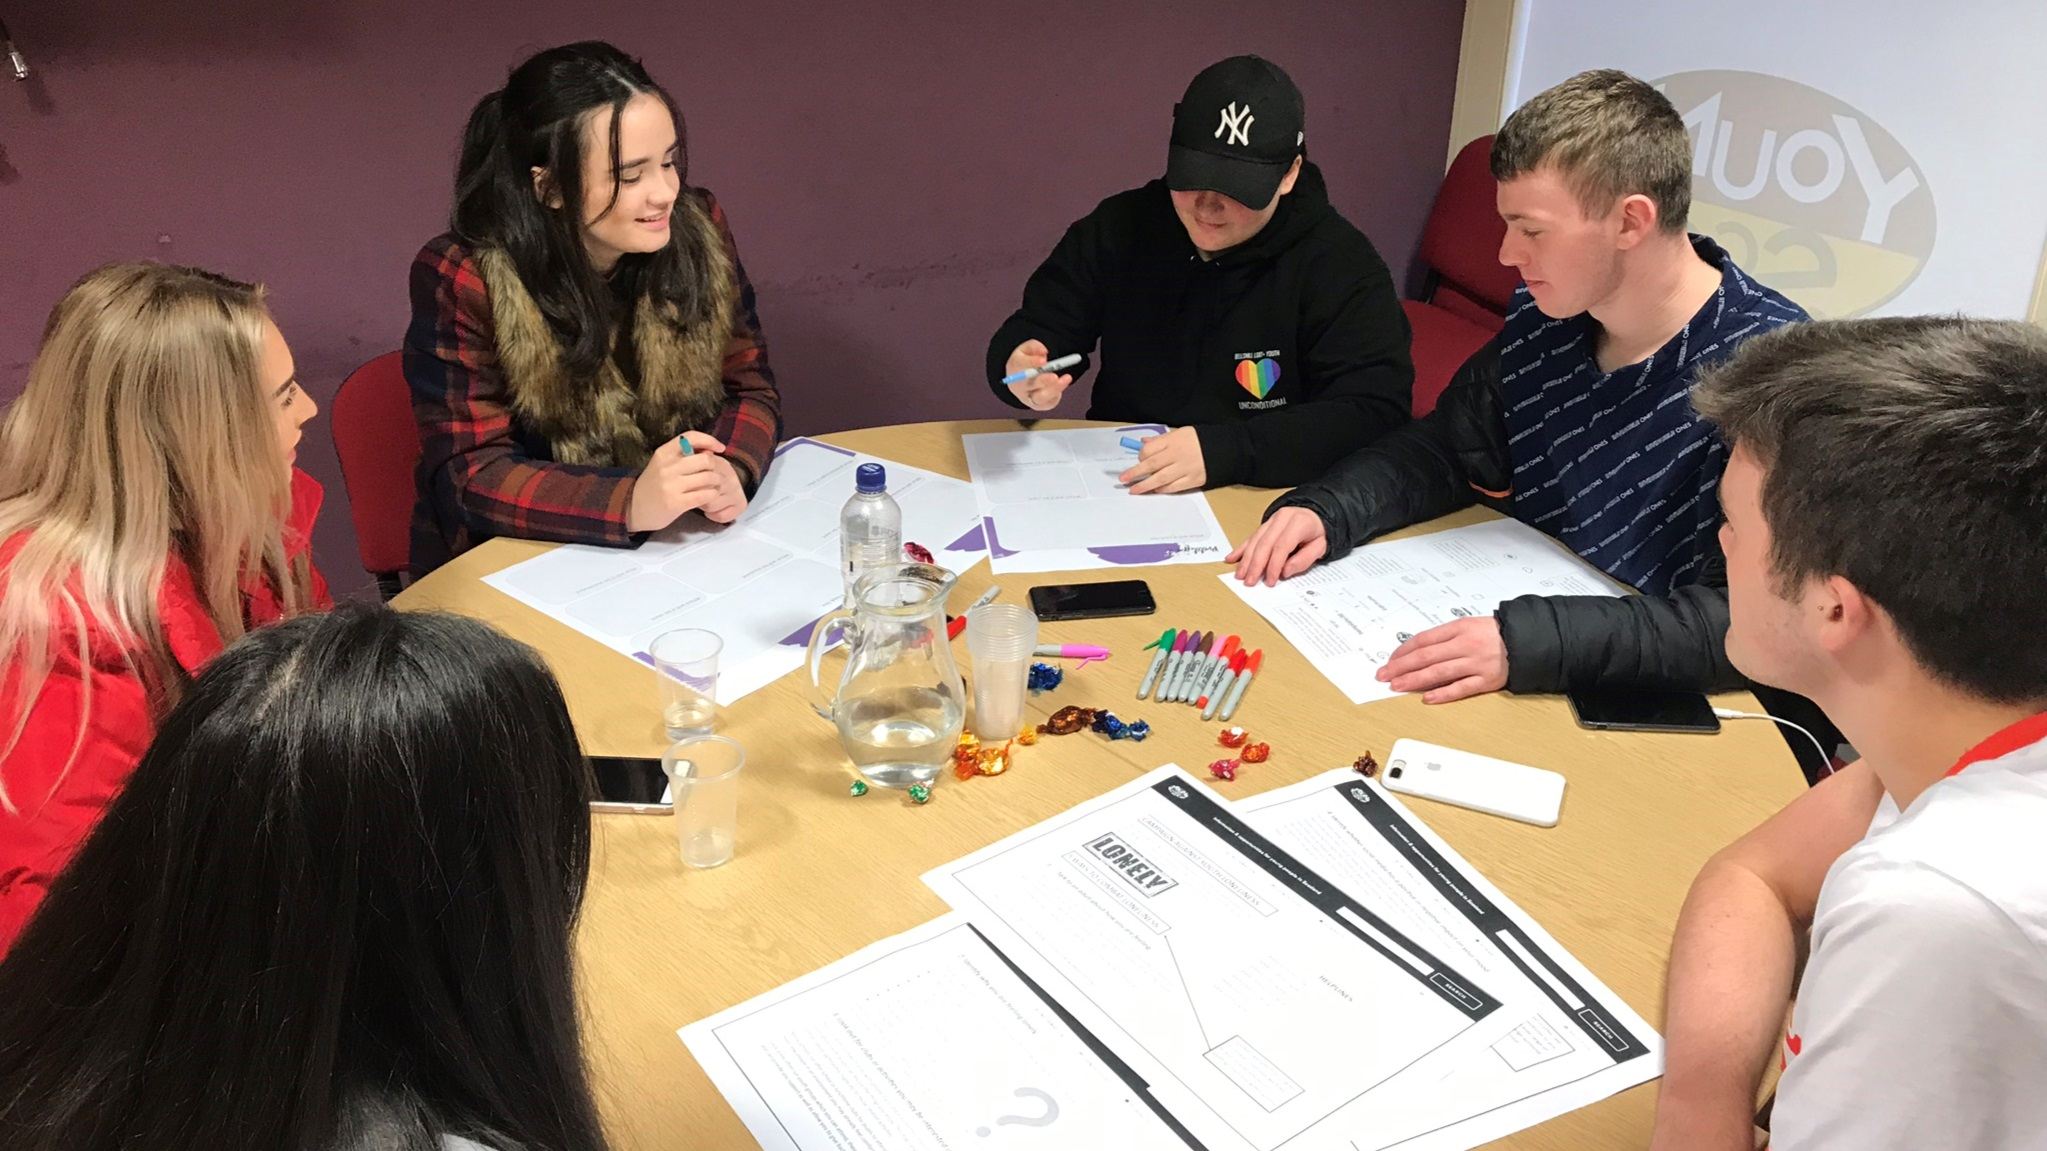 Young Scot Observatory - Hear what young people have to say about issues most important to them